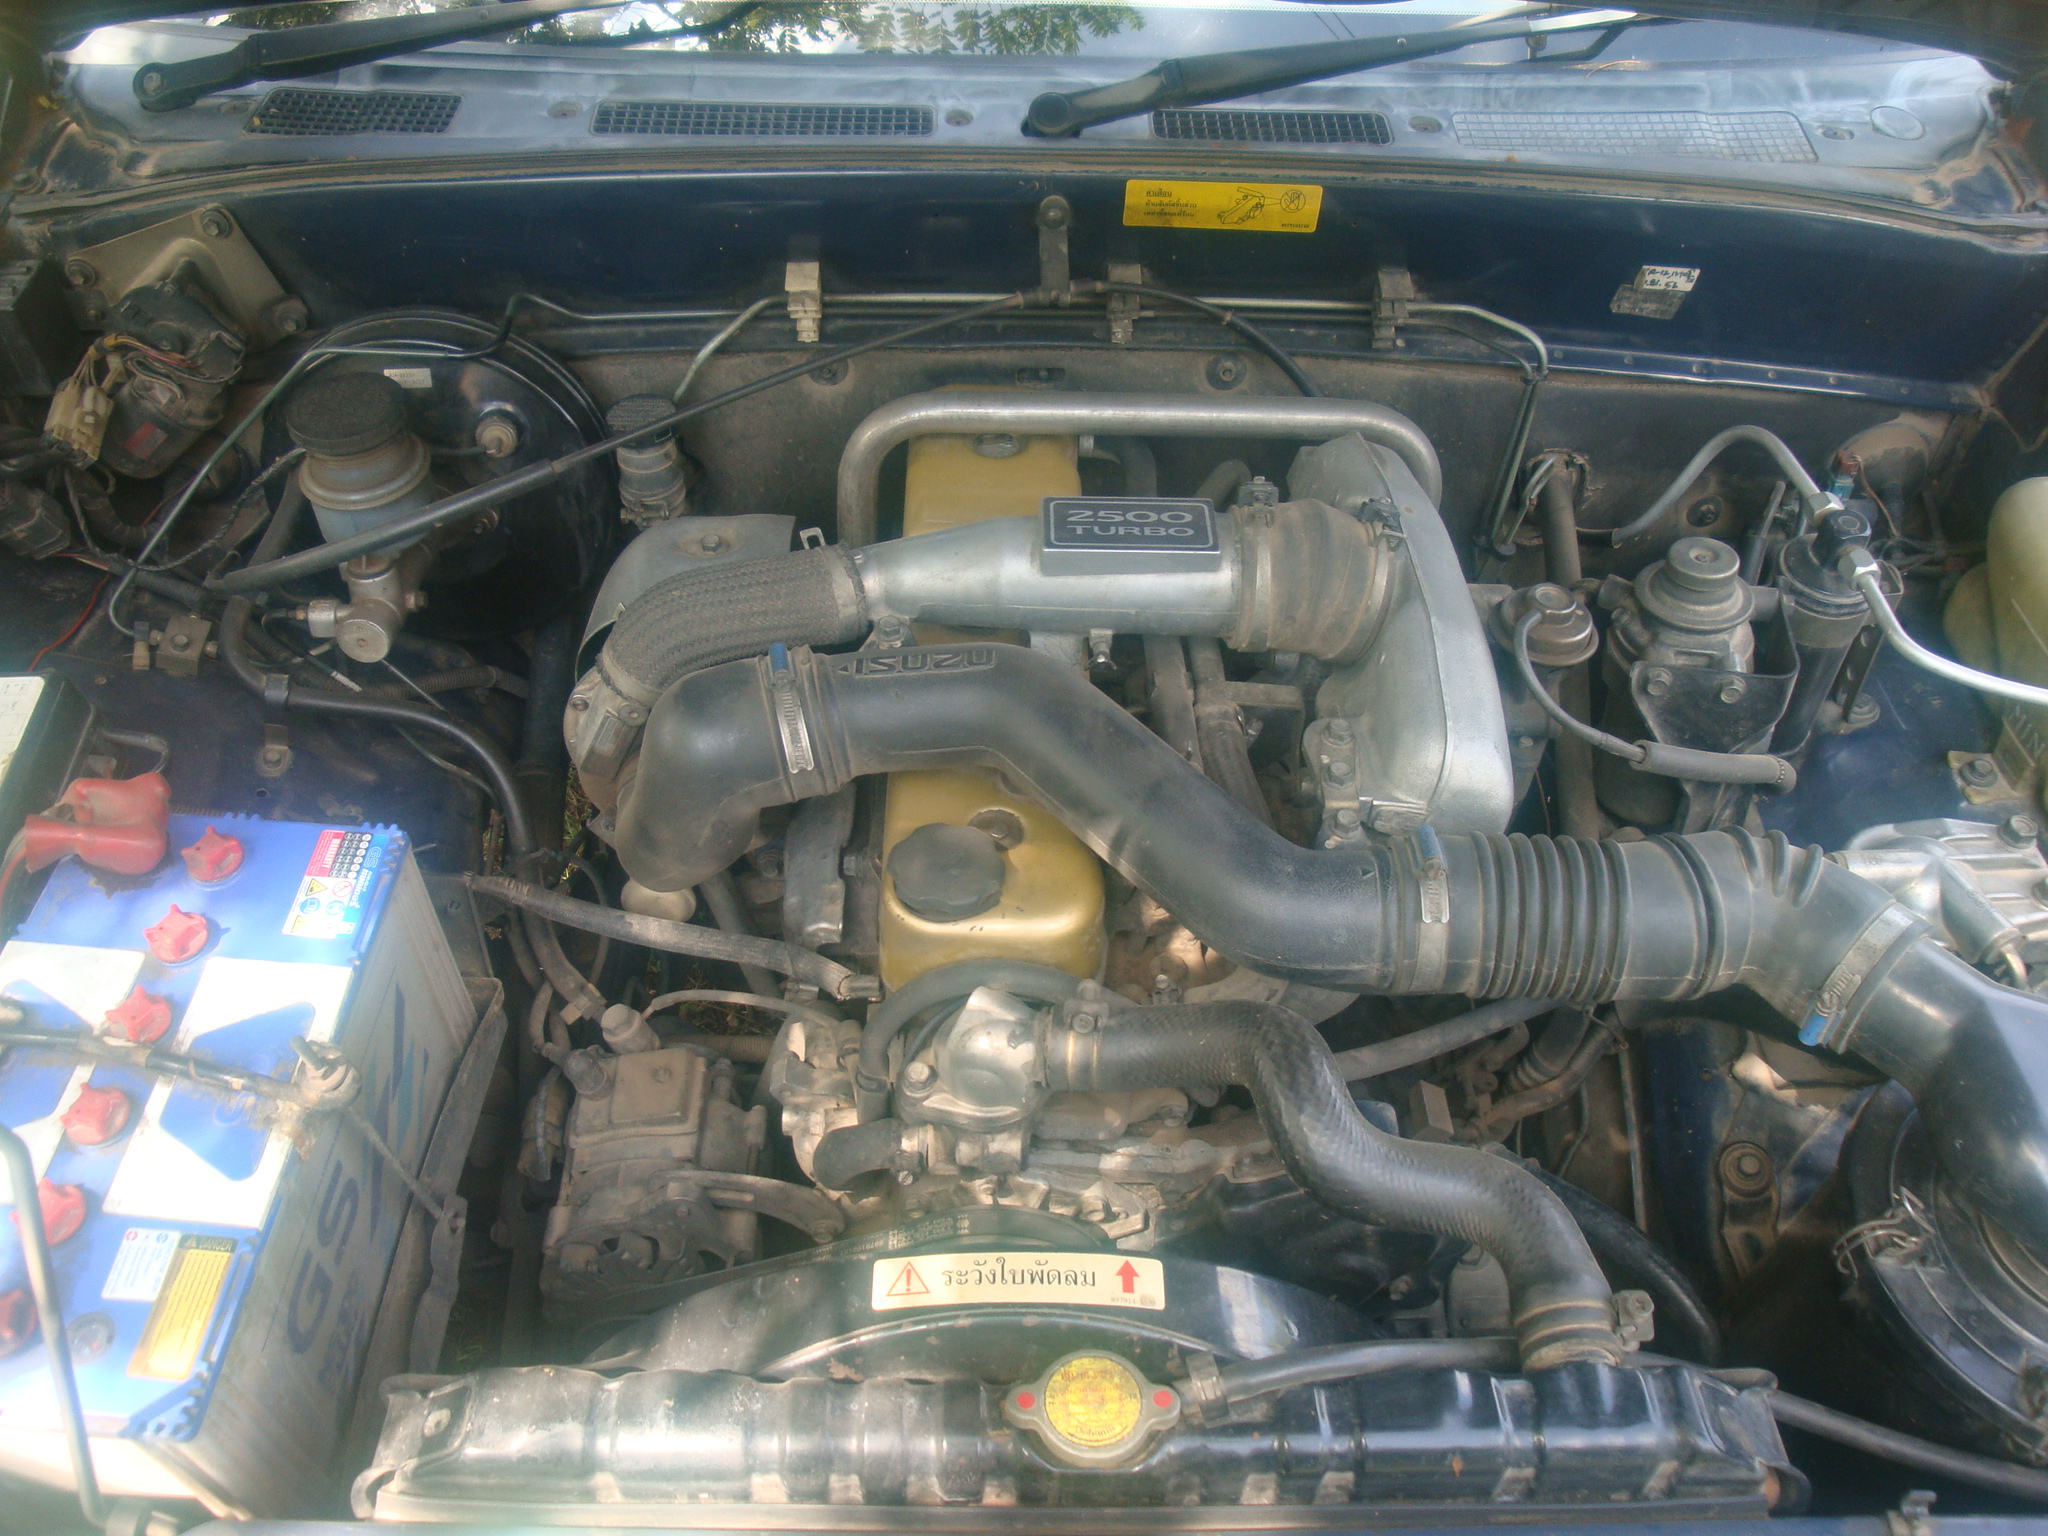 File:Isuzu TFR engine, labeled 2500 turbo (16015888918).jpg ...